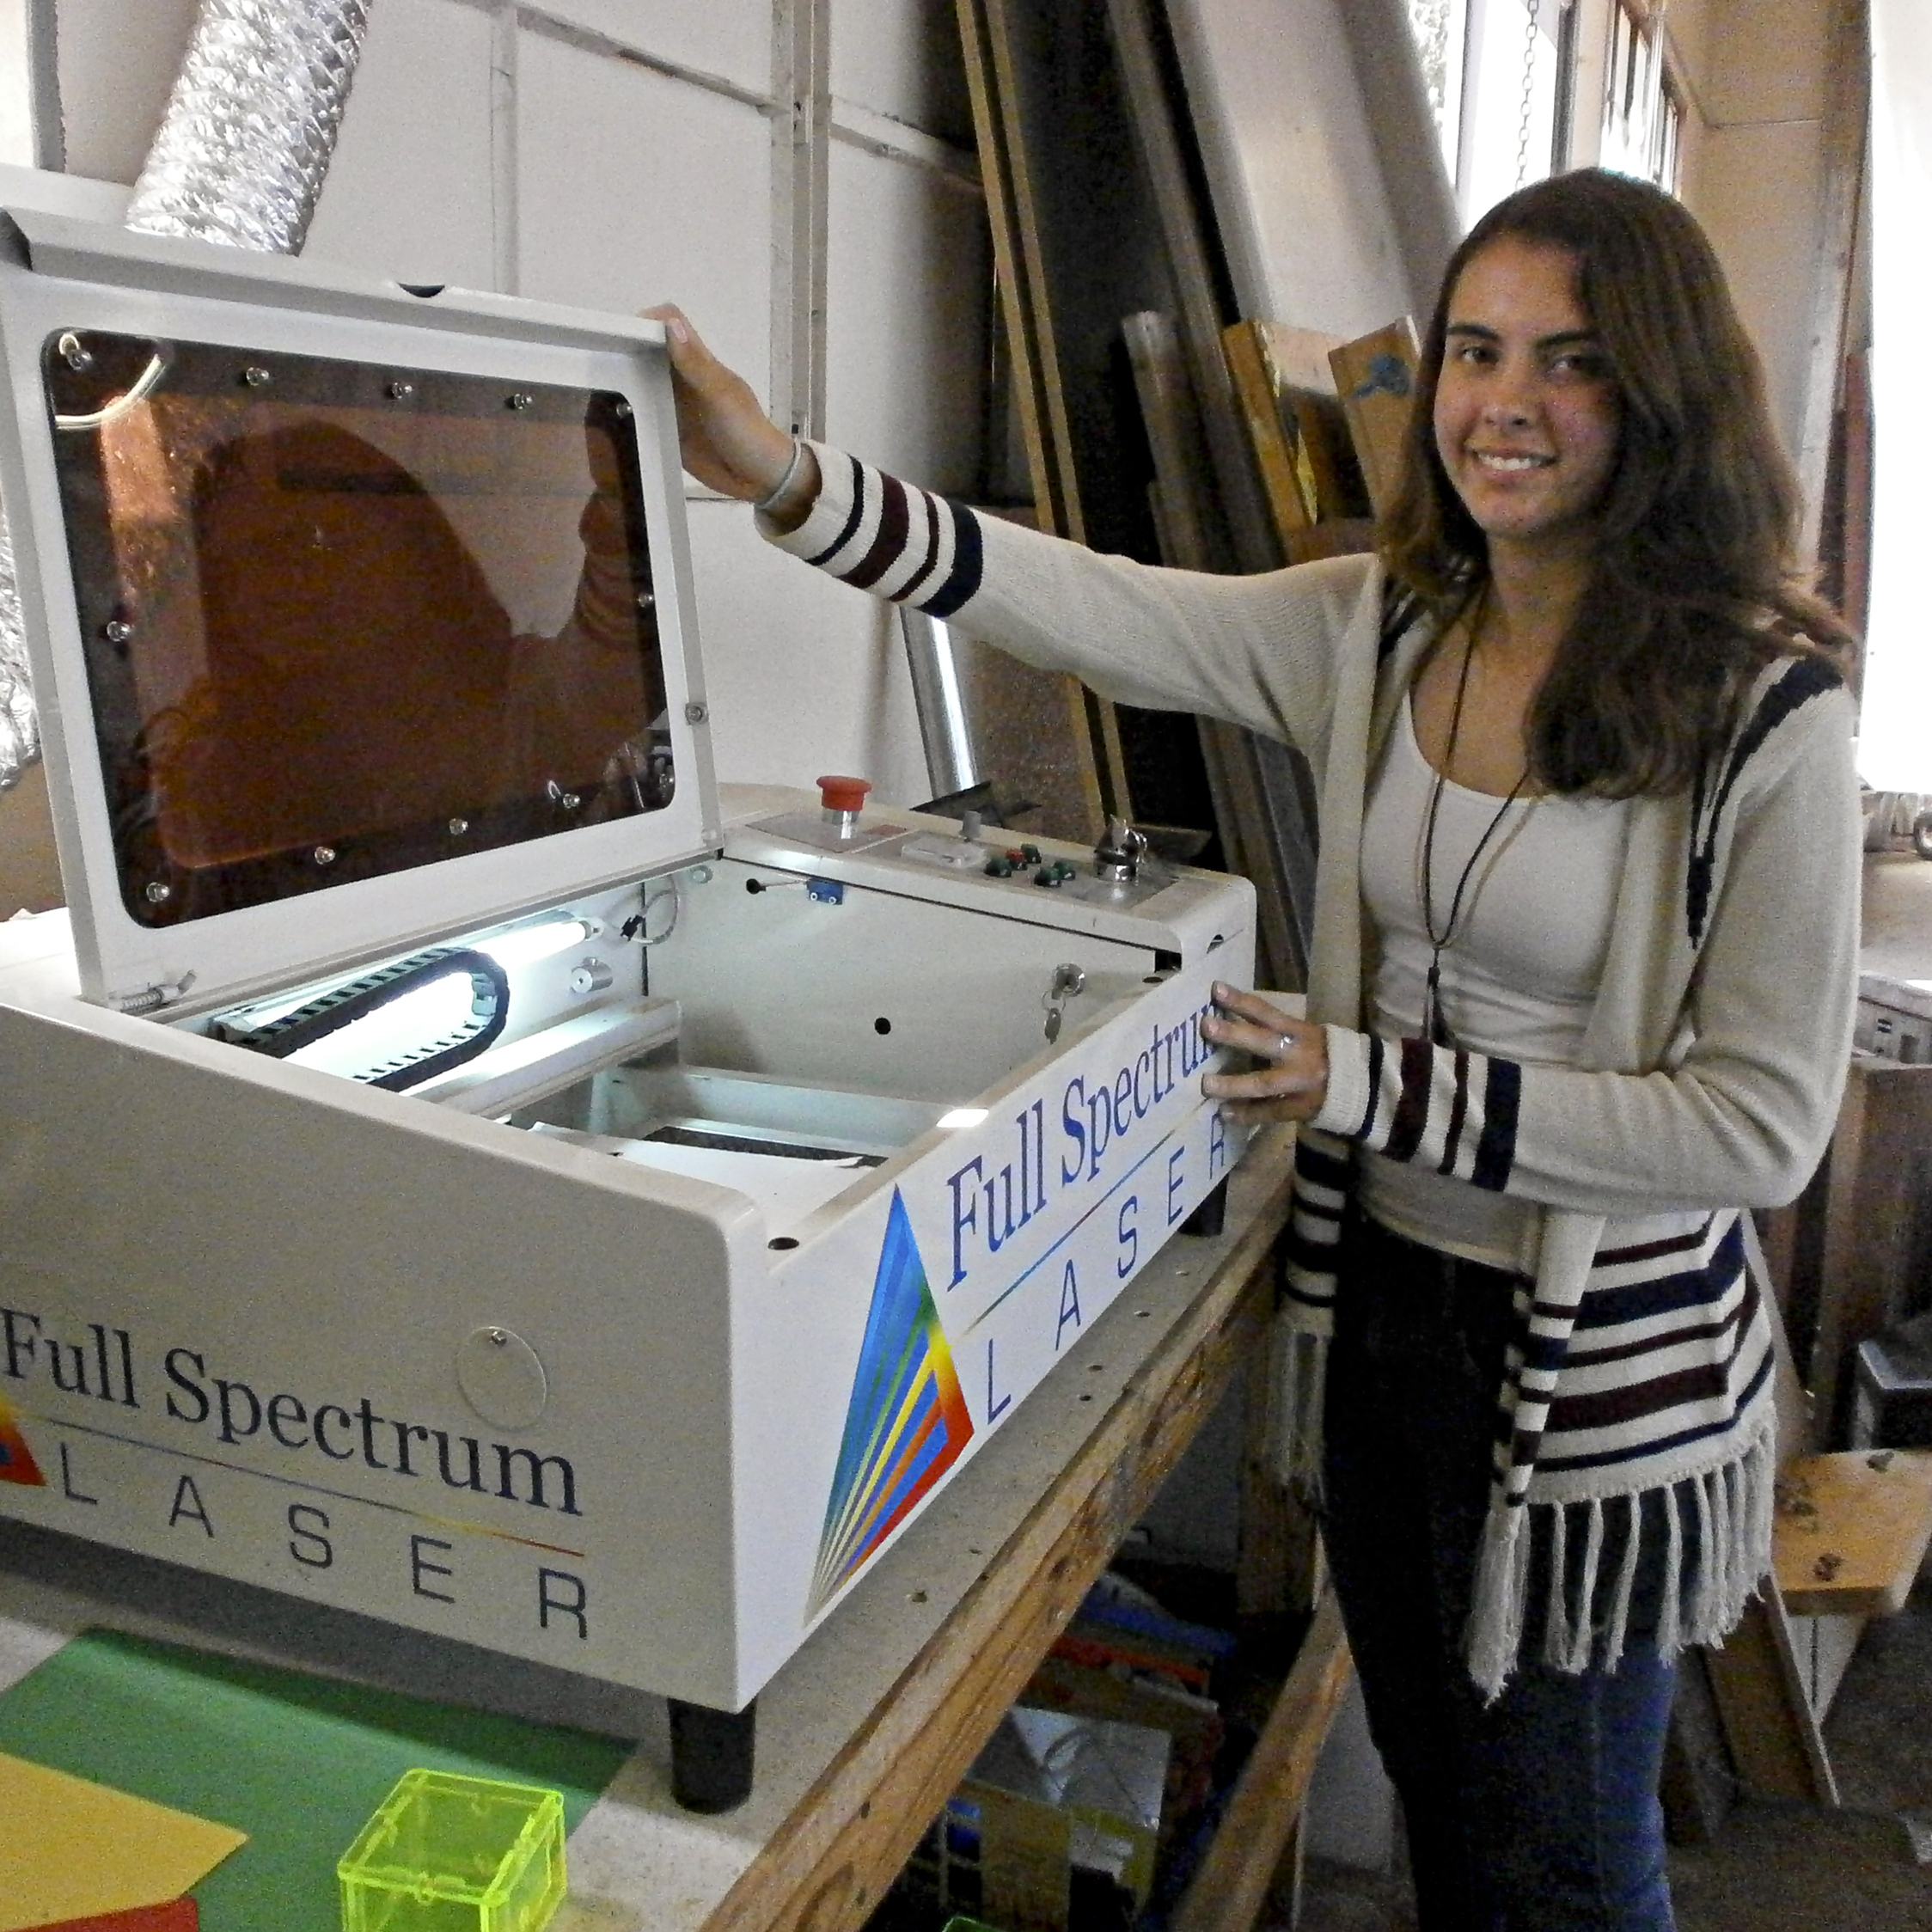 Jessie Davidson shows the school's laser cutter, which is used to burn the school insignia onto plastic objects, among other things.